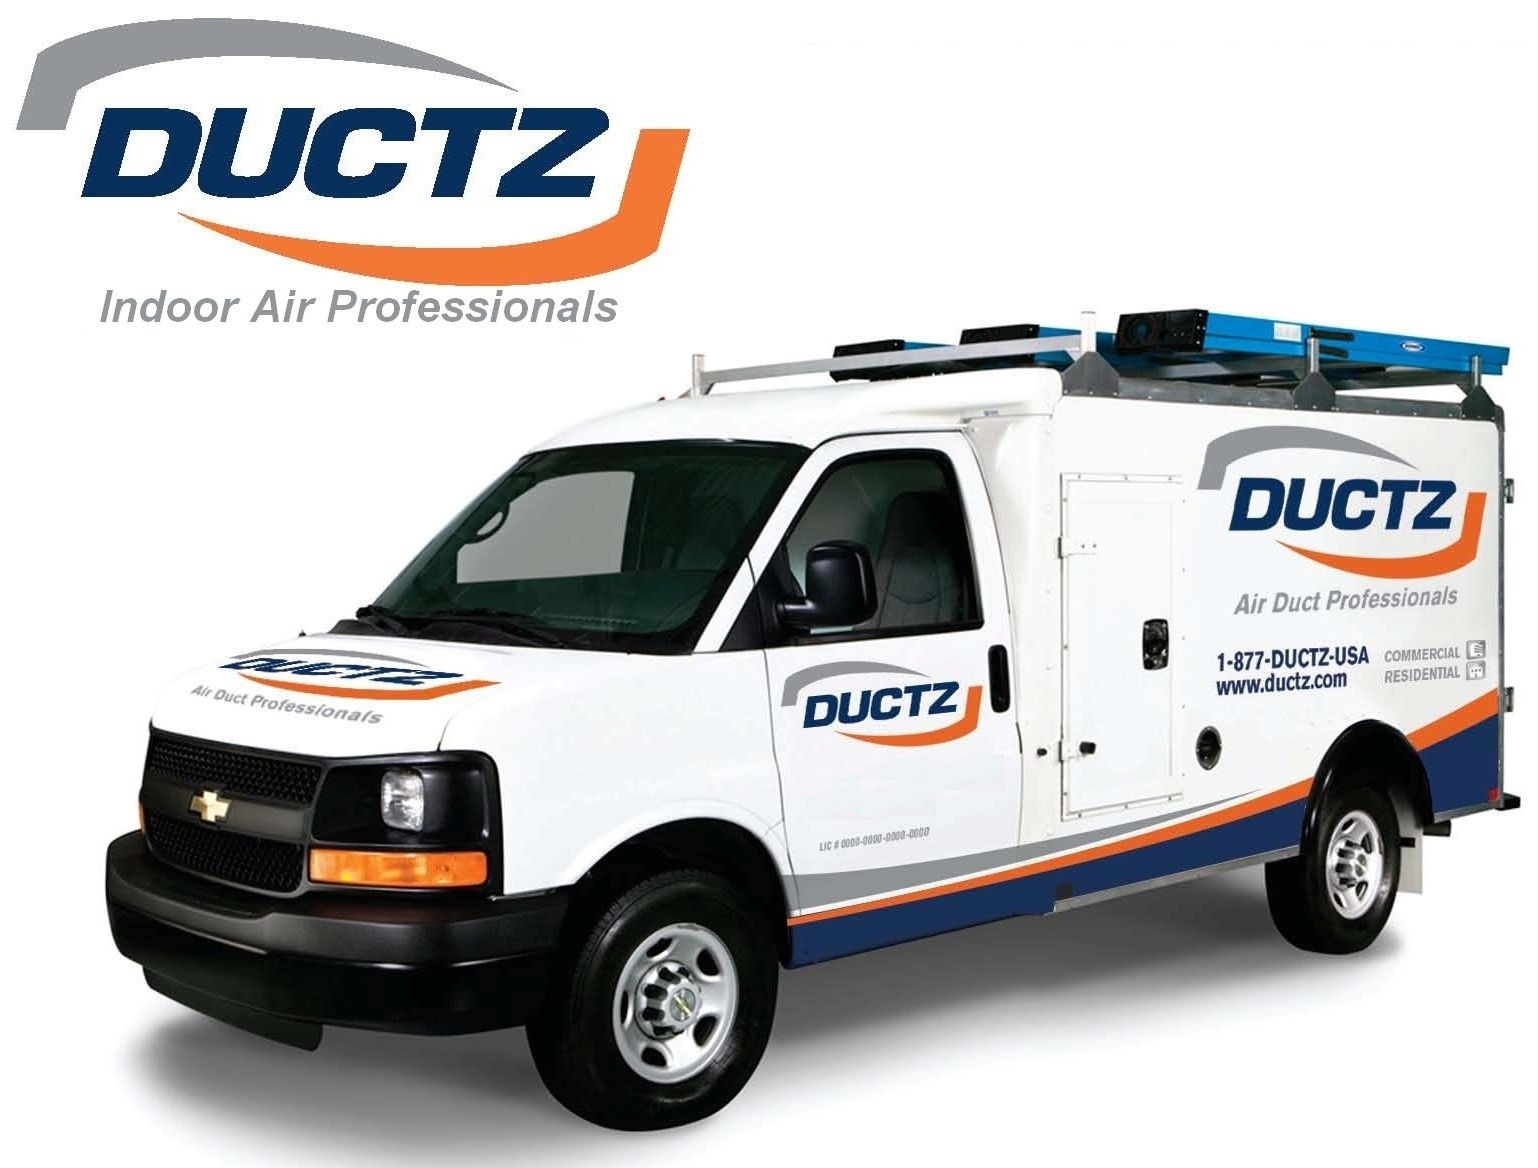 Ductz Of Pompano Beach Is The Local South Florida Office Of The